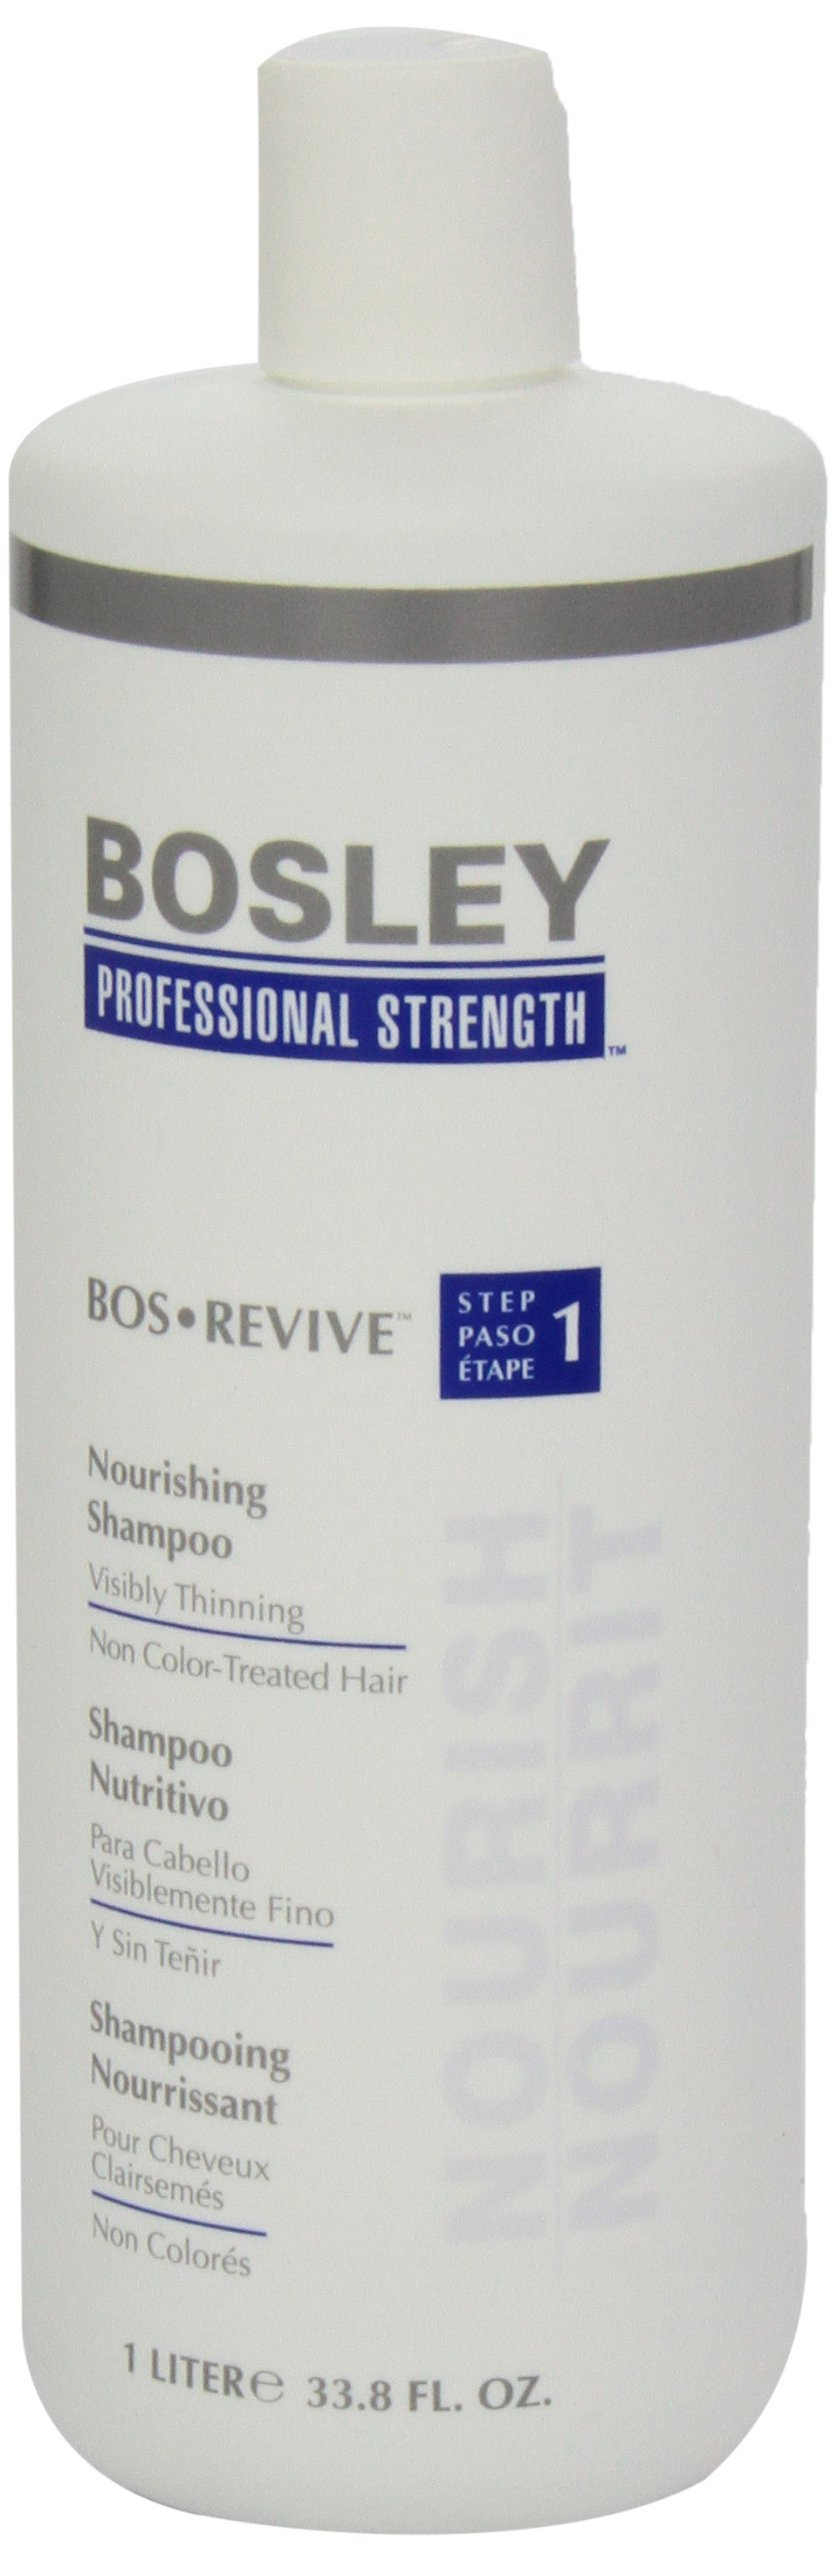 Bosley Bos Revive Nourishing Shampoo for Visibly Thinning Non Color-Treated Hair, 33.8 Ounce by Bosley Professional Strength (Image #4)